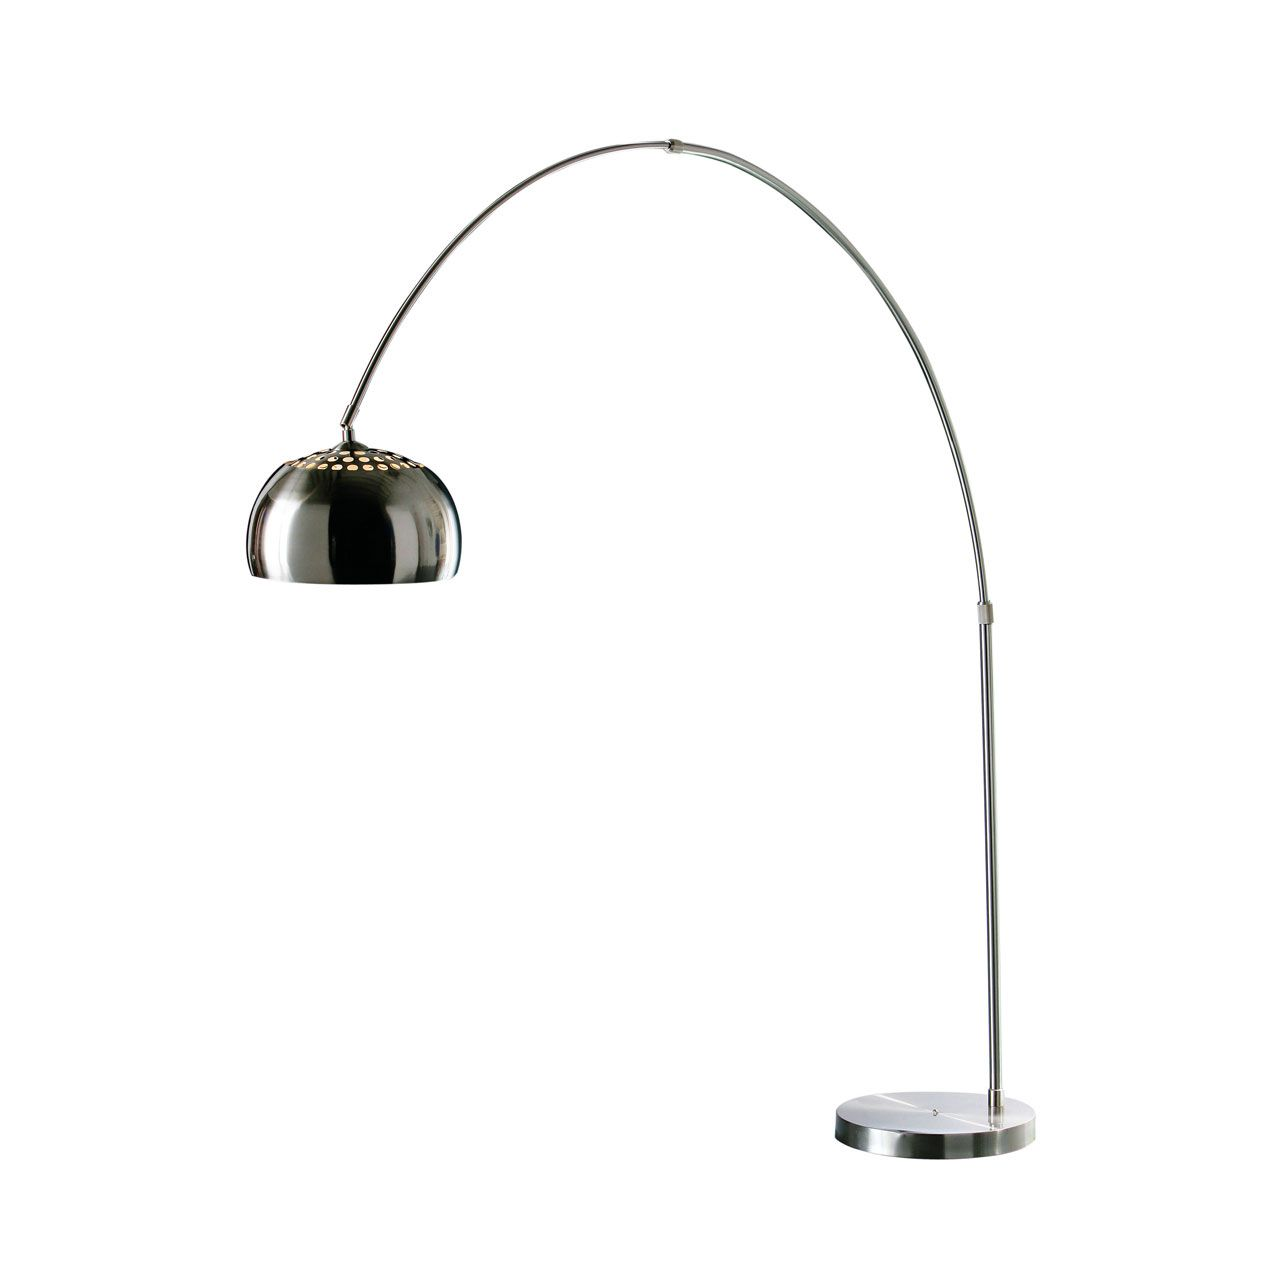 Arco Chrome Style Floor Standing Lamp This Is A